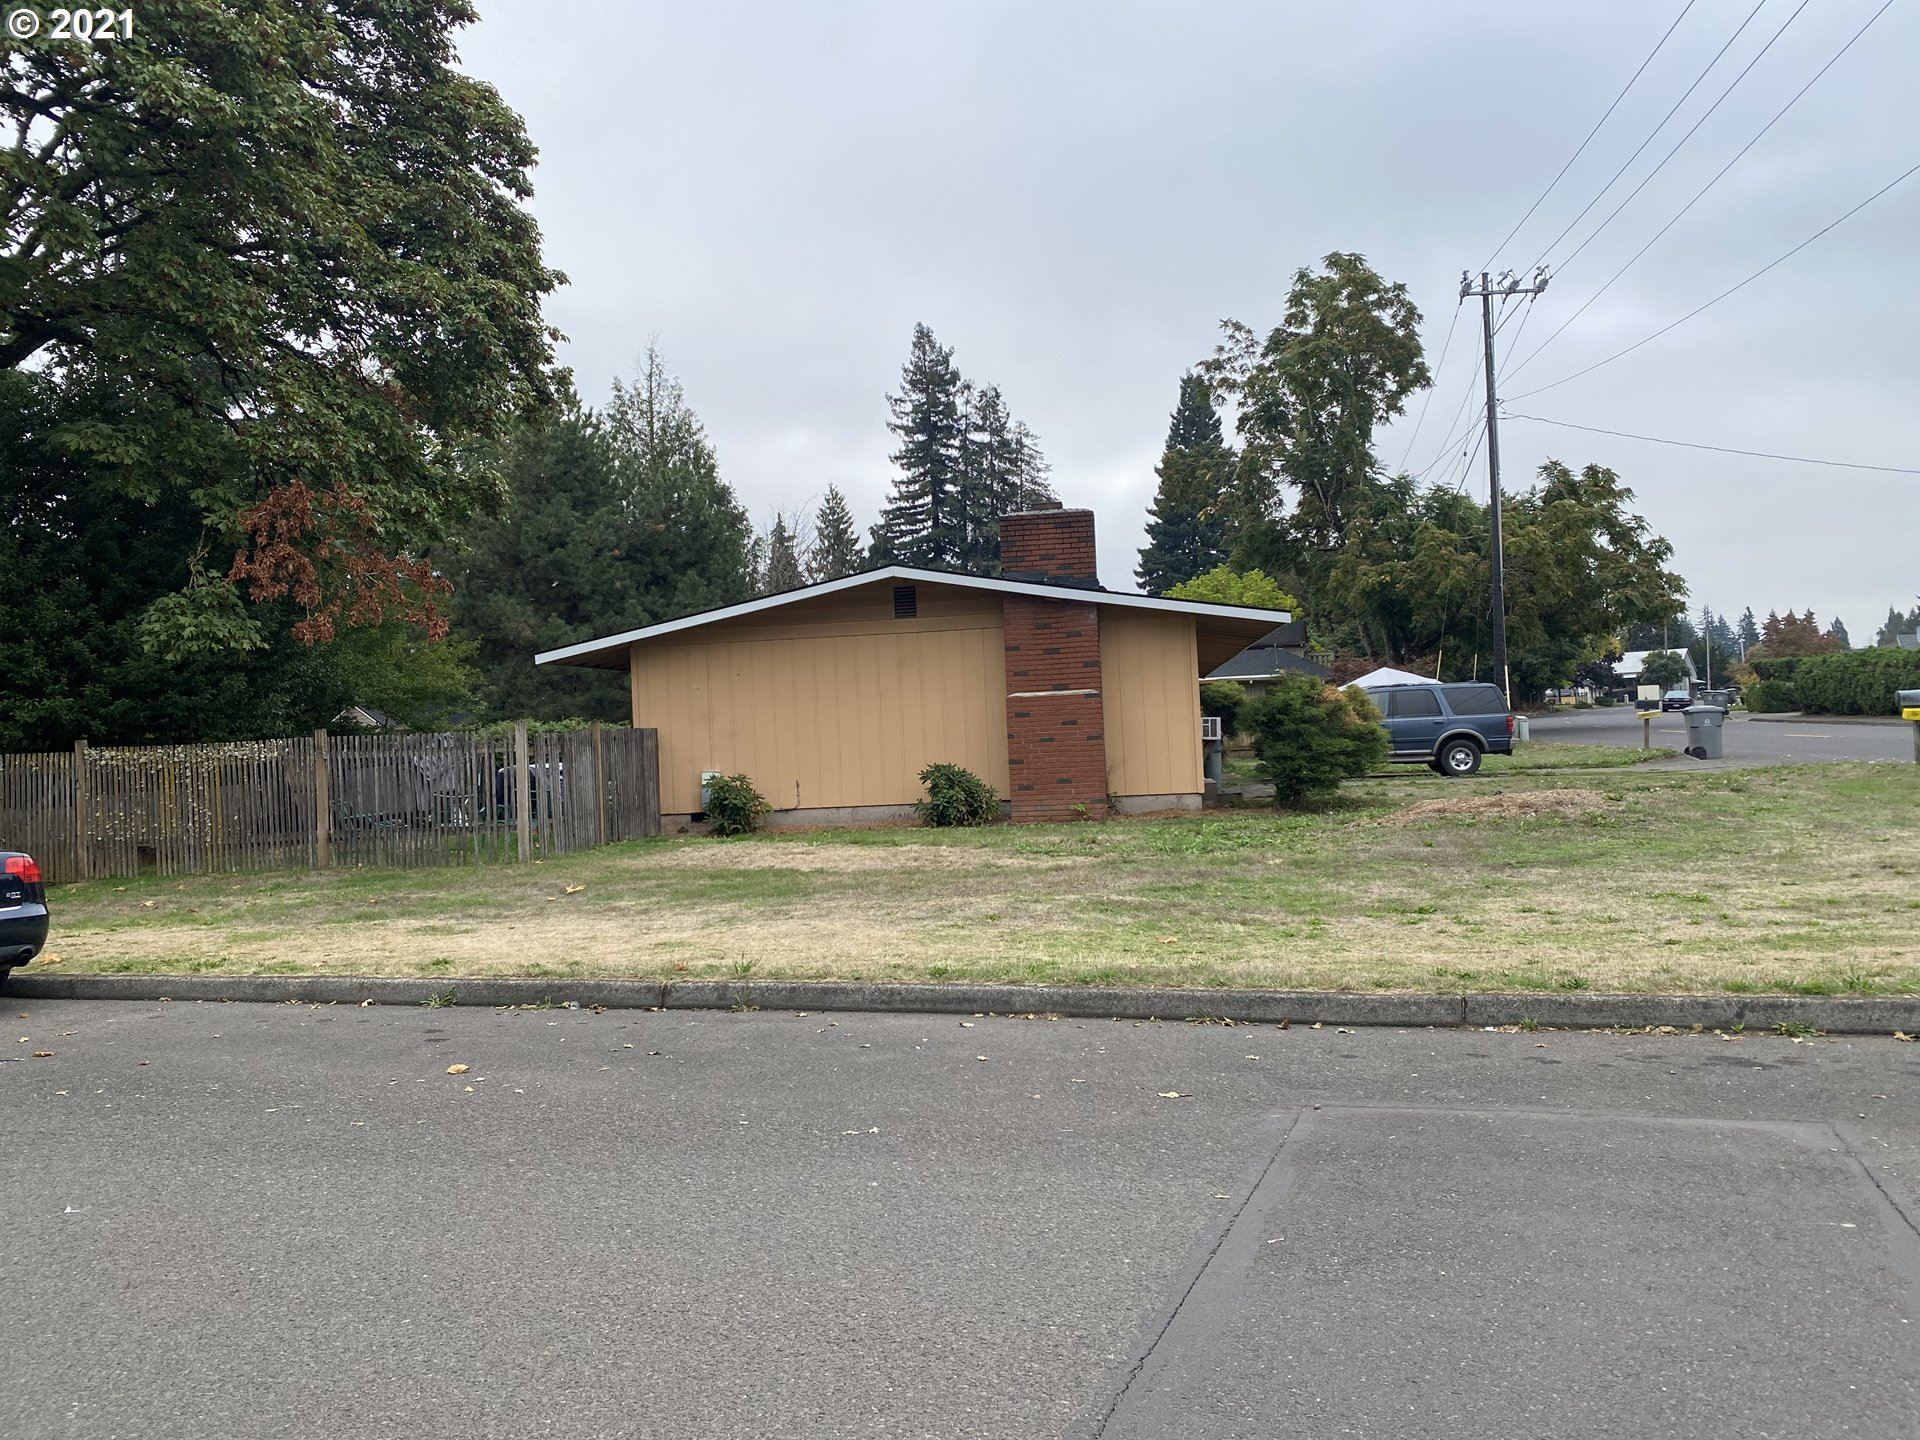 Photo of 400 S ELM ST, Canby, OR 97013 (MLS # 21302268)